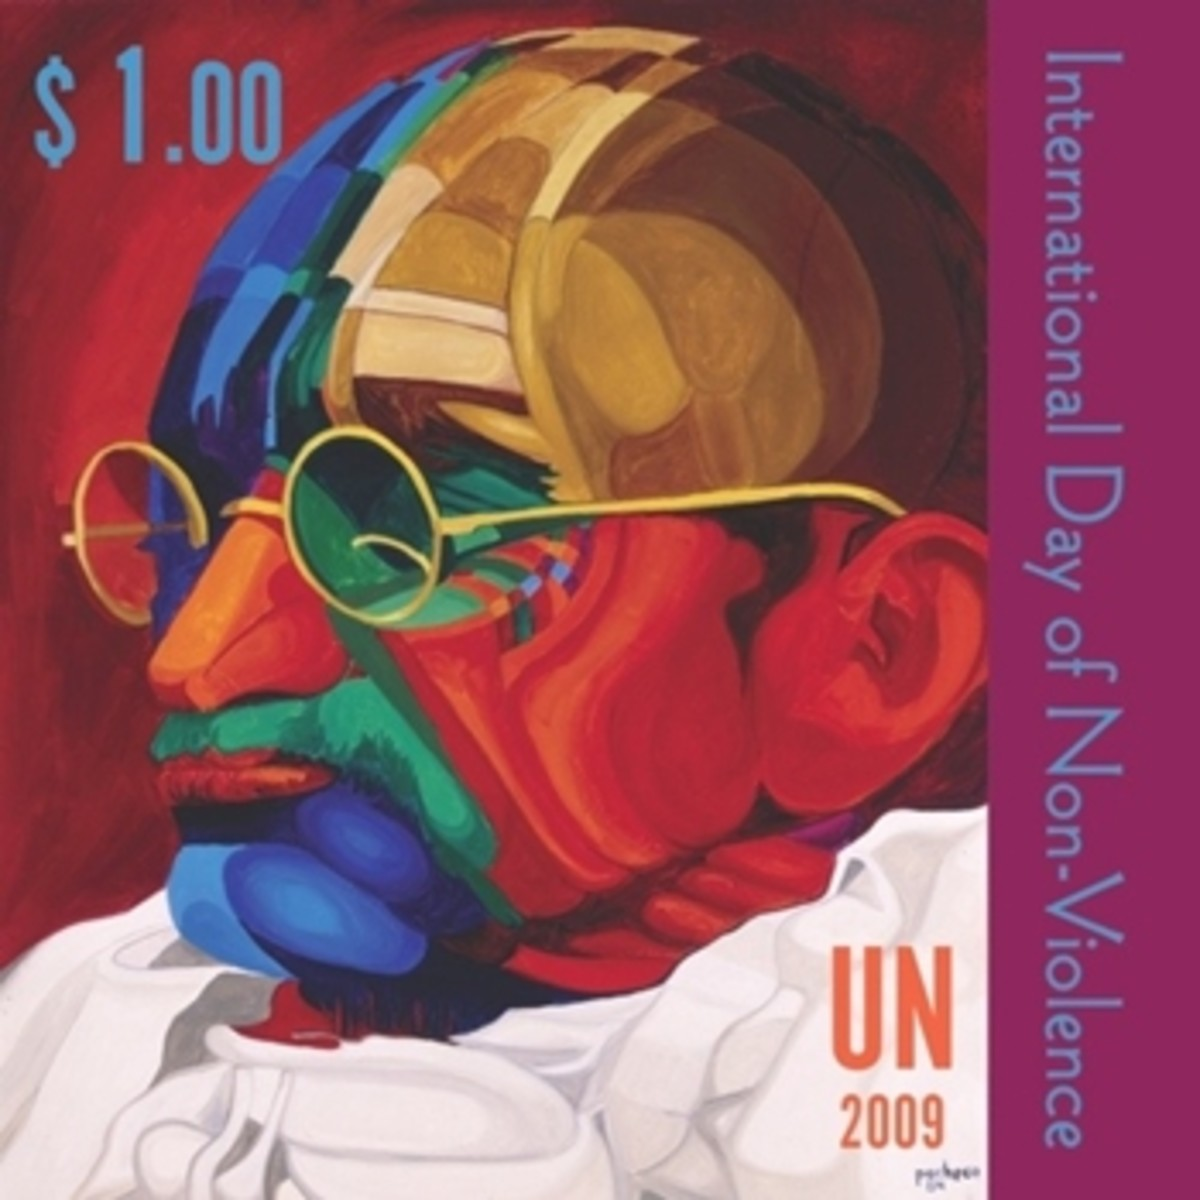 A special stamp on Mahatma Gandhi was issued by United Nations in 2009, declaring his Birthday as Day of Non-Violence